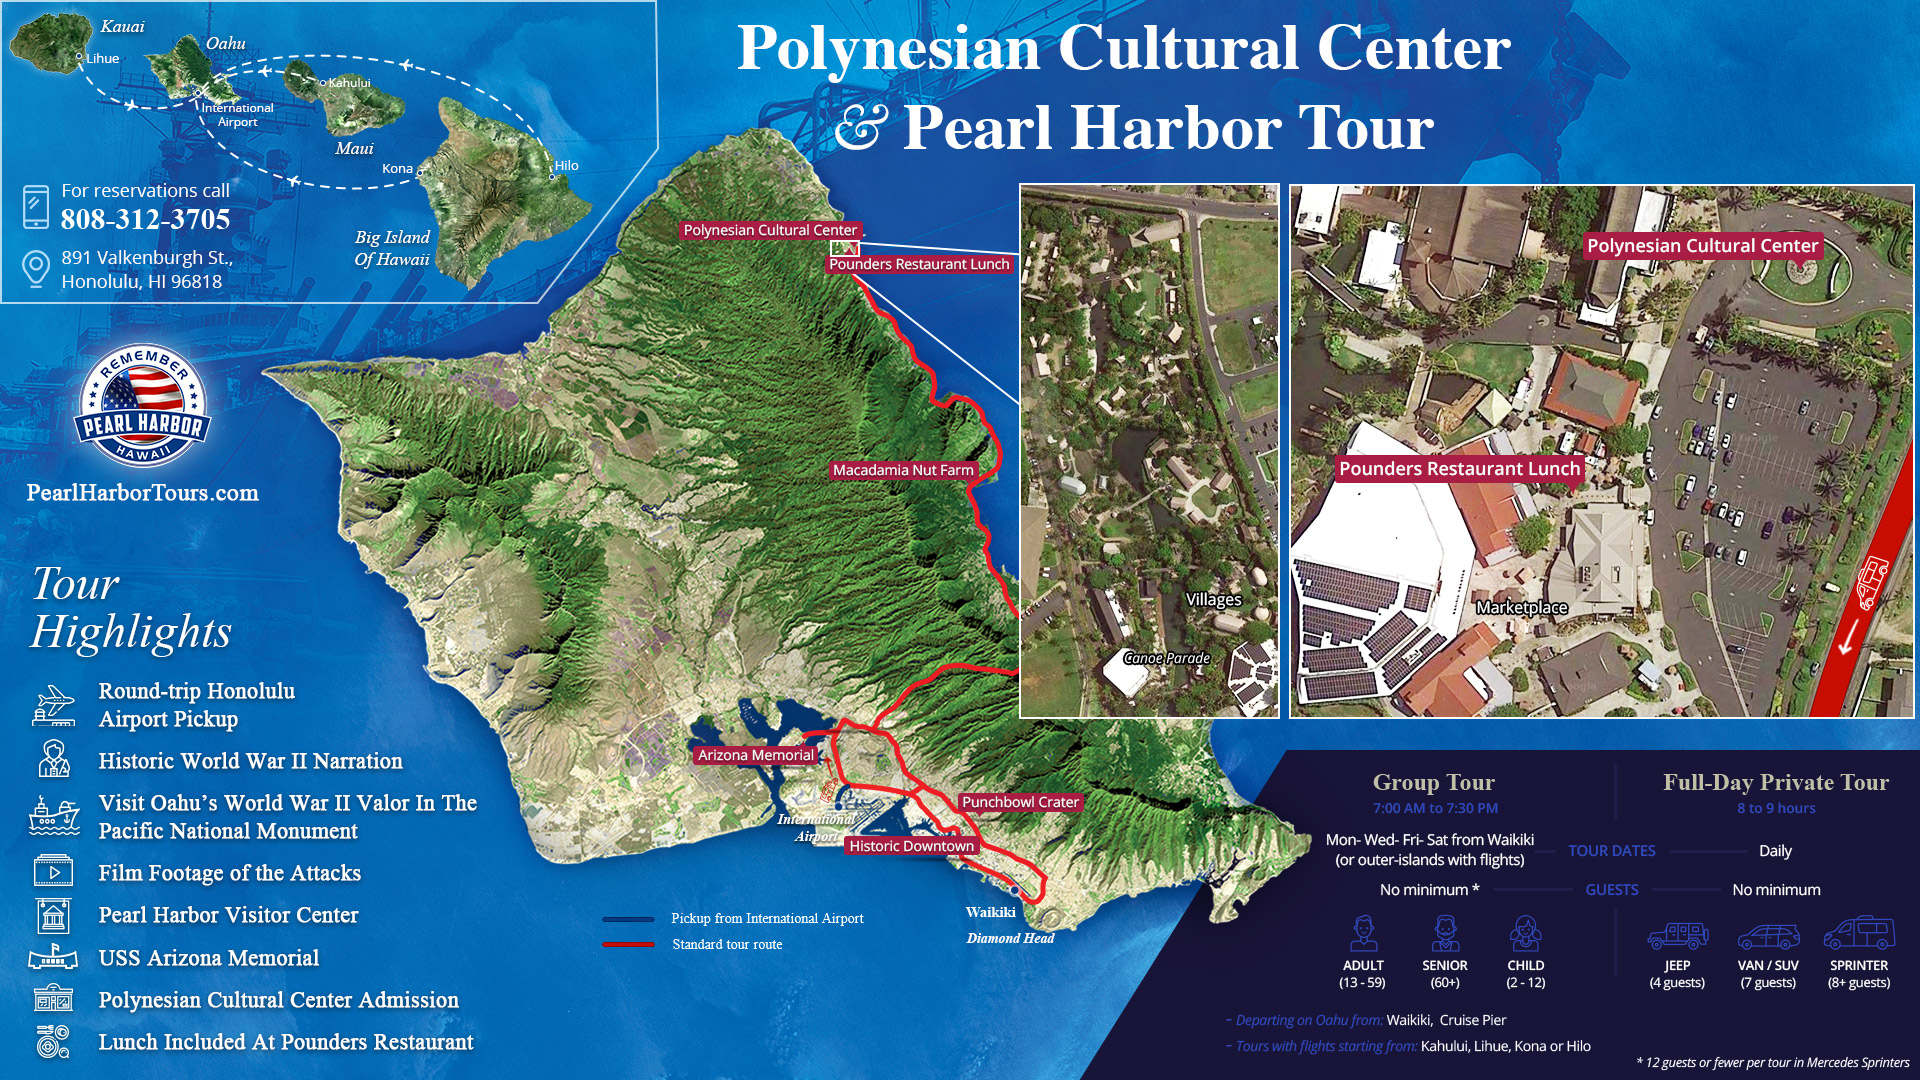 Polynesian Cultural Center and Pearl Harbor Tour Map